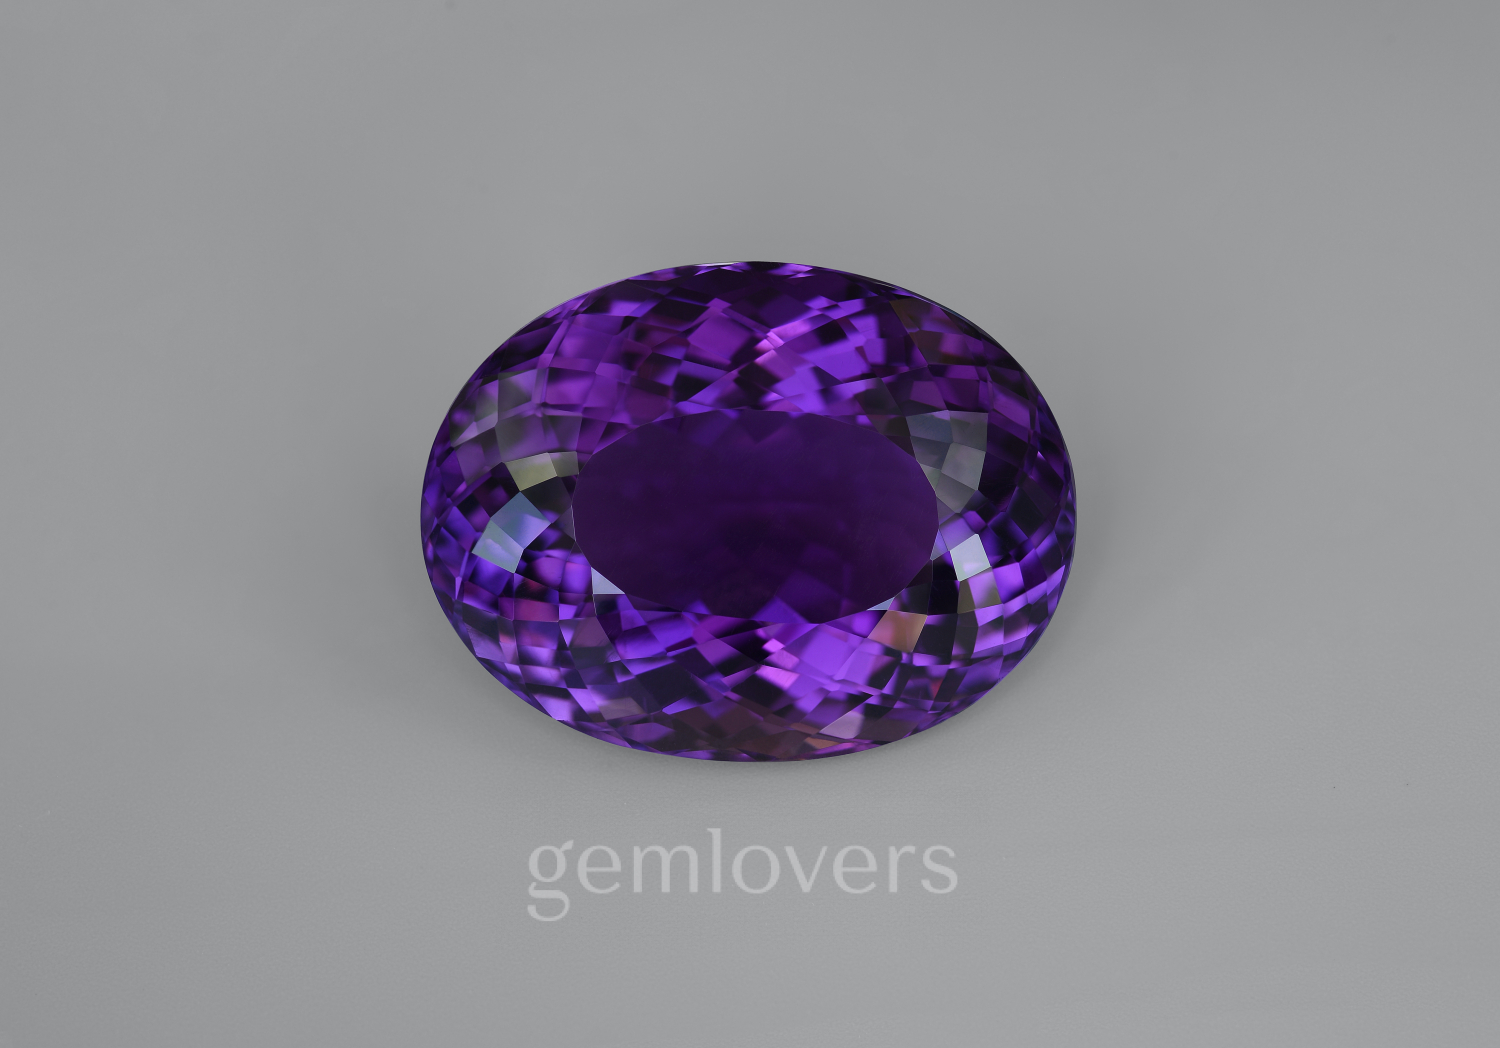 Large amethyst from Brazil